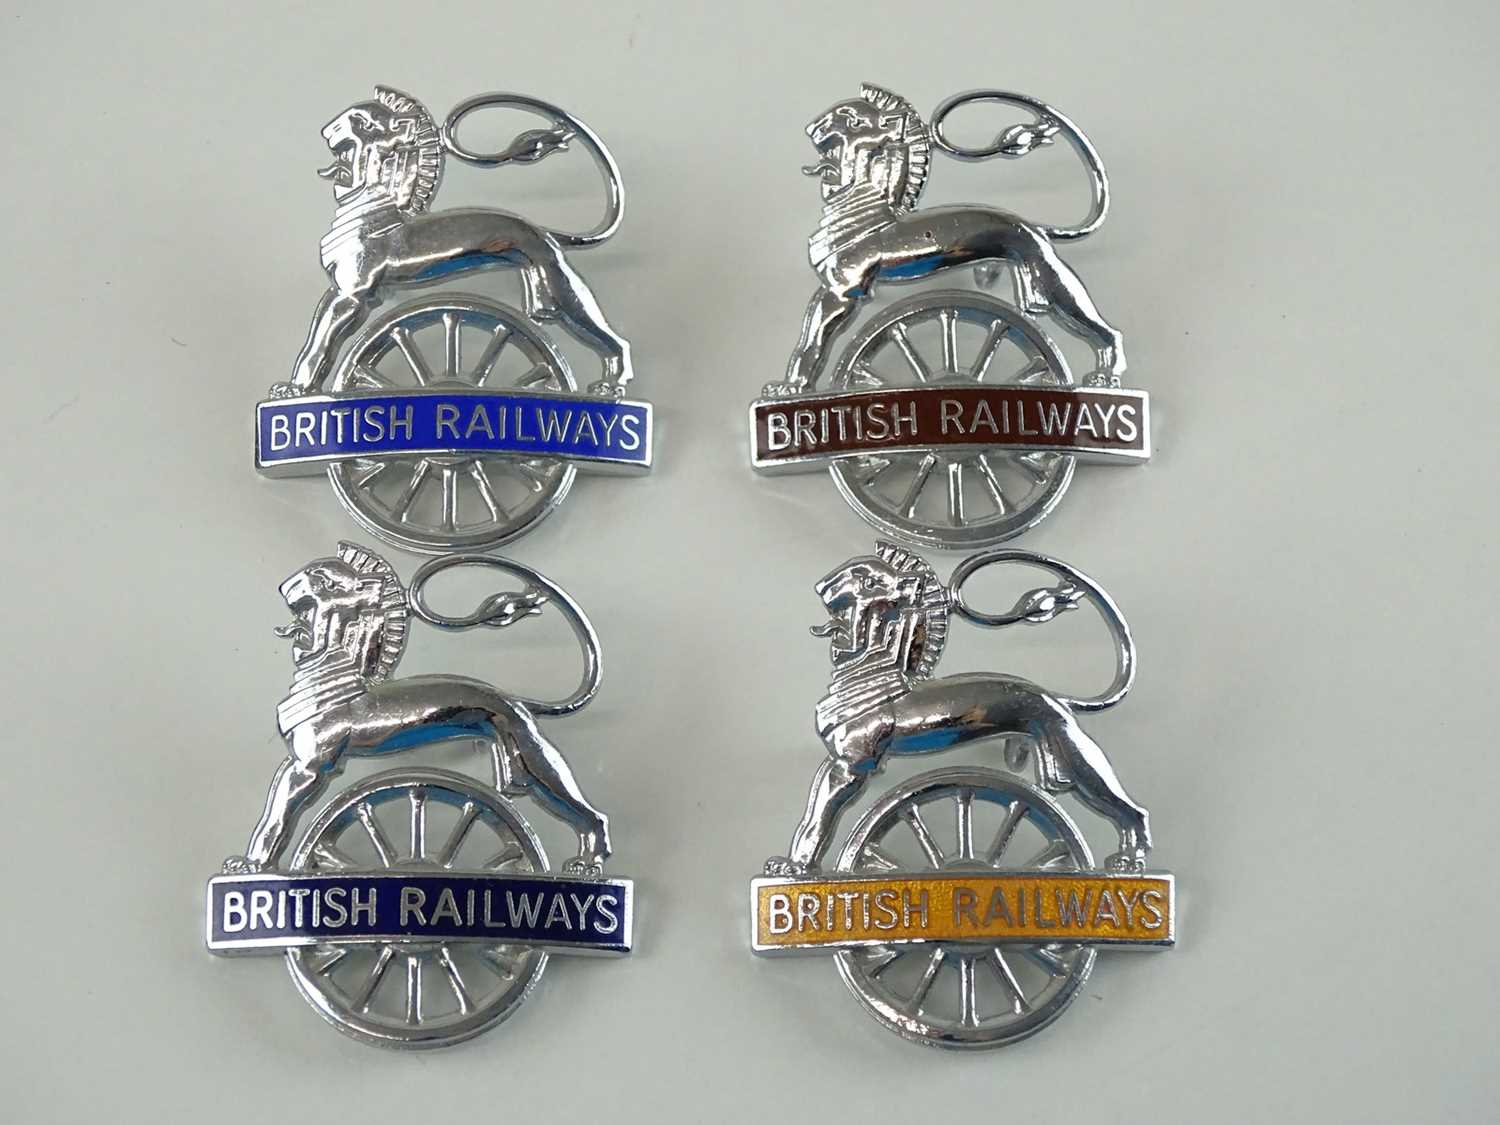 A group of British Railways lion & wheel logo cap badges - all enamelled with different region